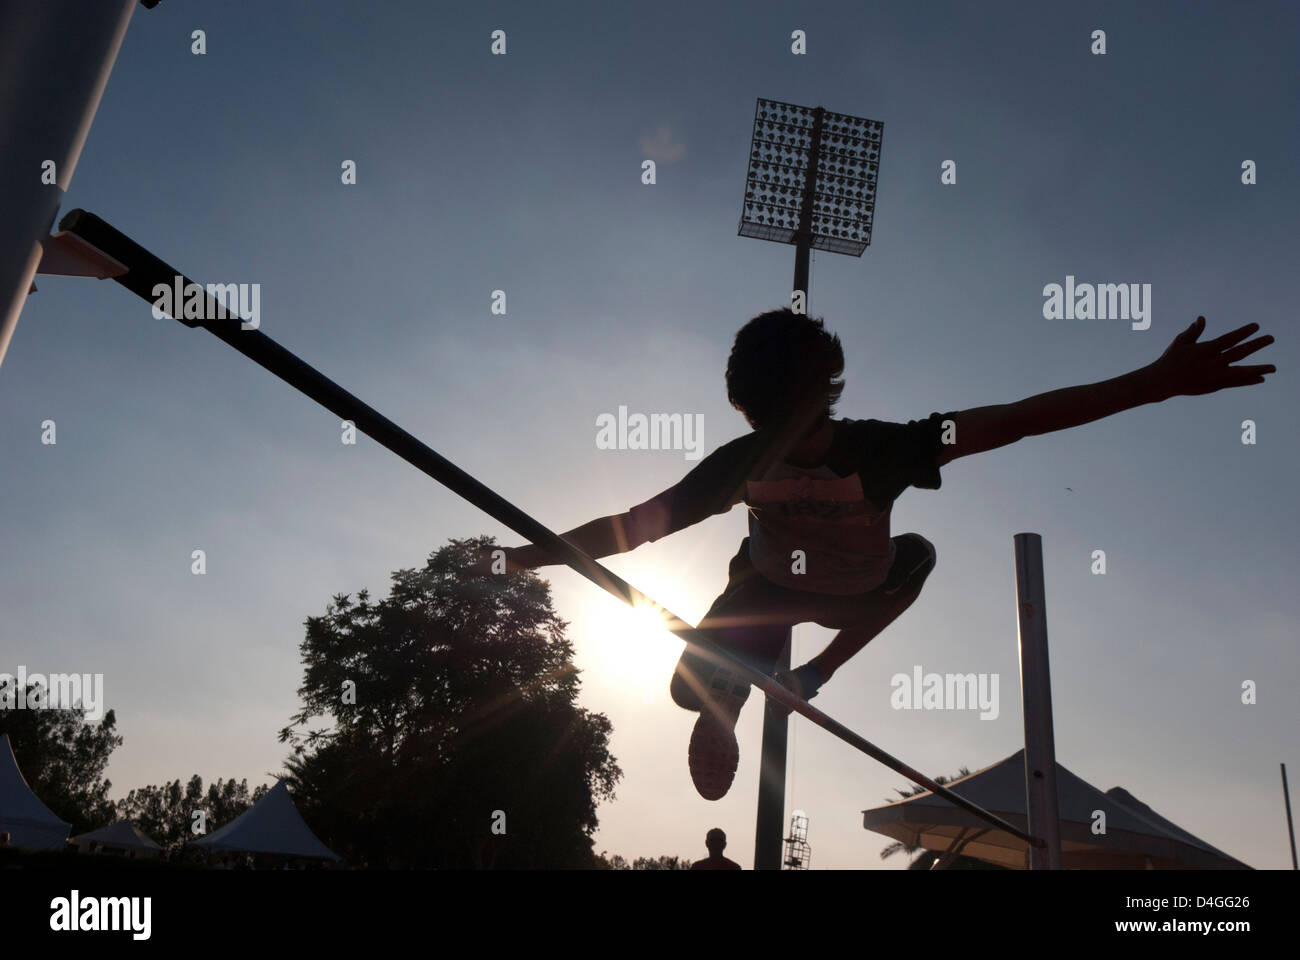 The silhouette of a boy participating in the high jump. - Stock Image